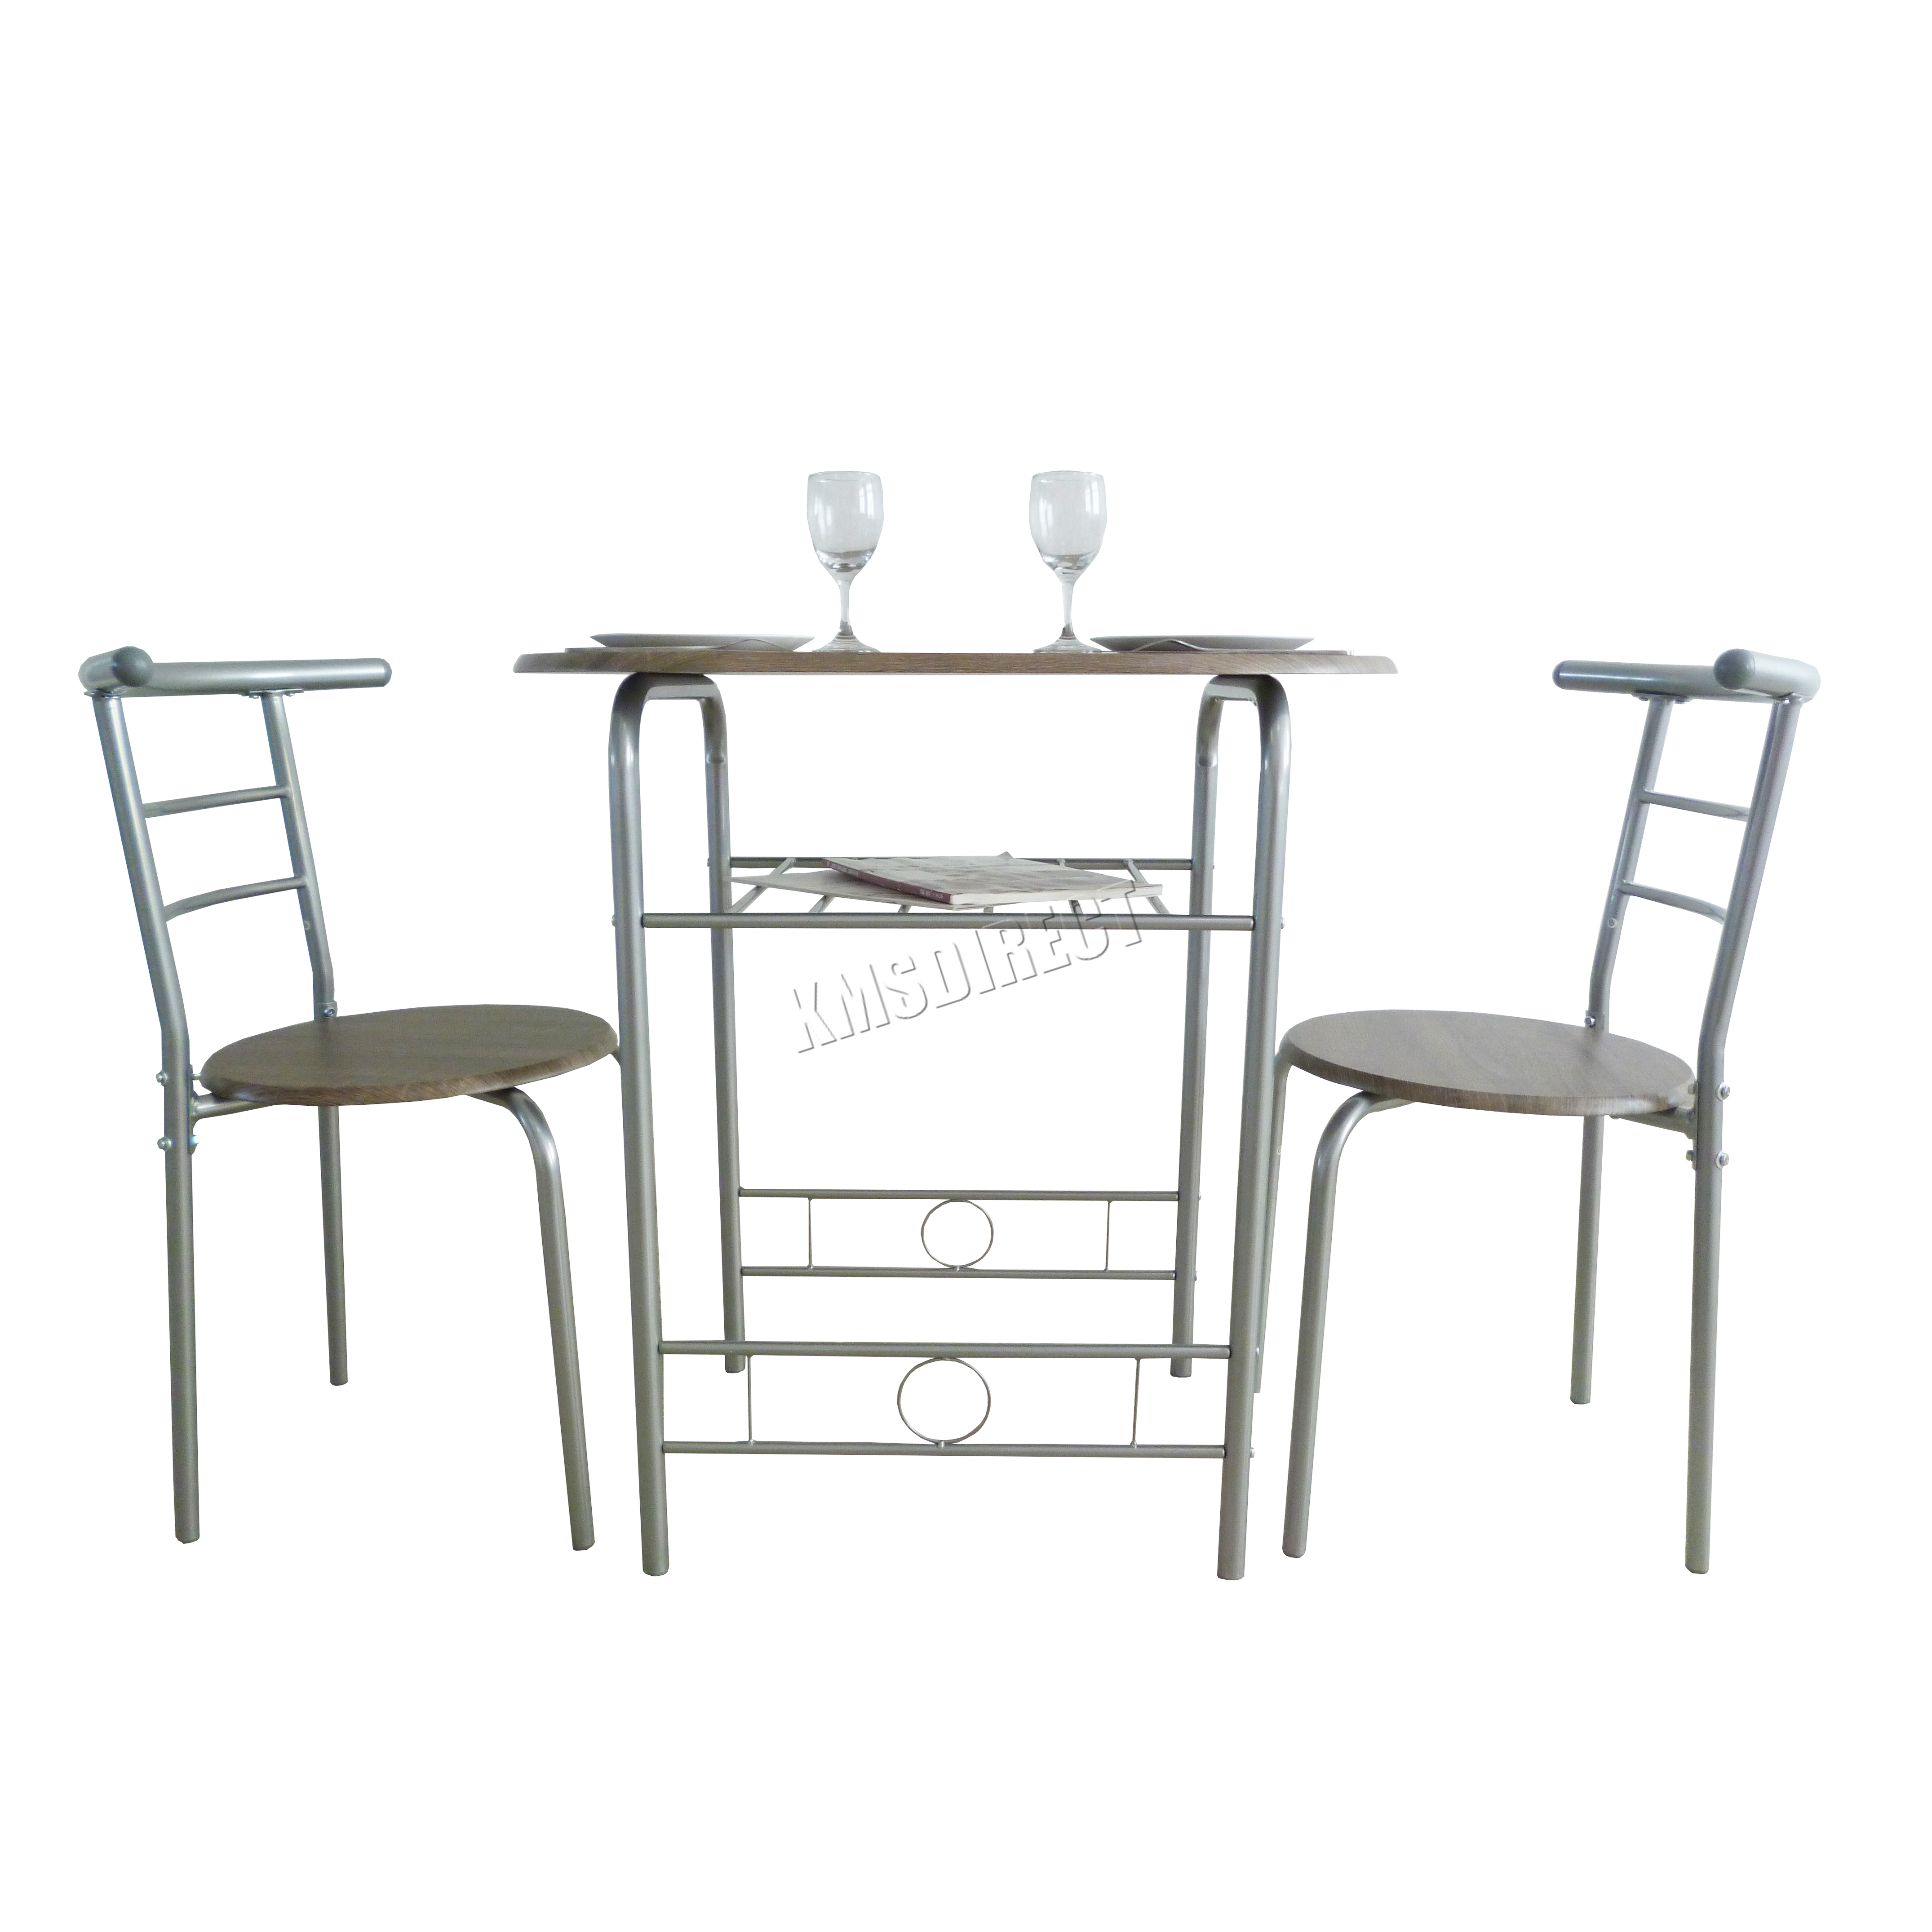 small-dinette-sets.html100 2 chair dining table small round dining table and 2 cha